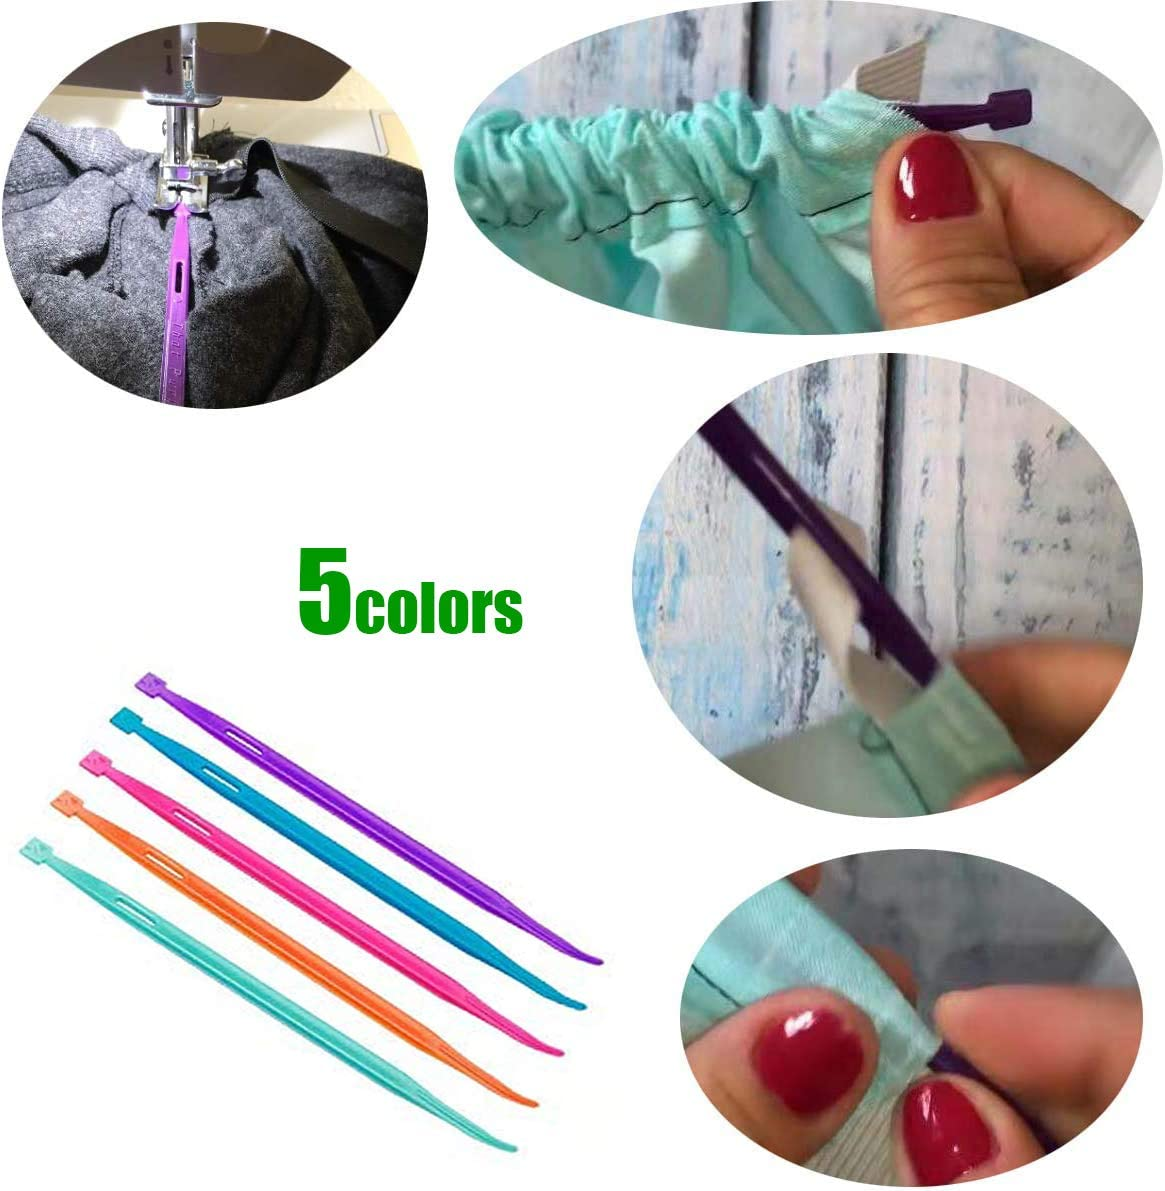 25pcs Sewing Clips for Sewing Craft Projects 5pcs Thang Sewing Tools YICBOR 1pcs Roll /& Press